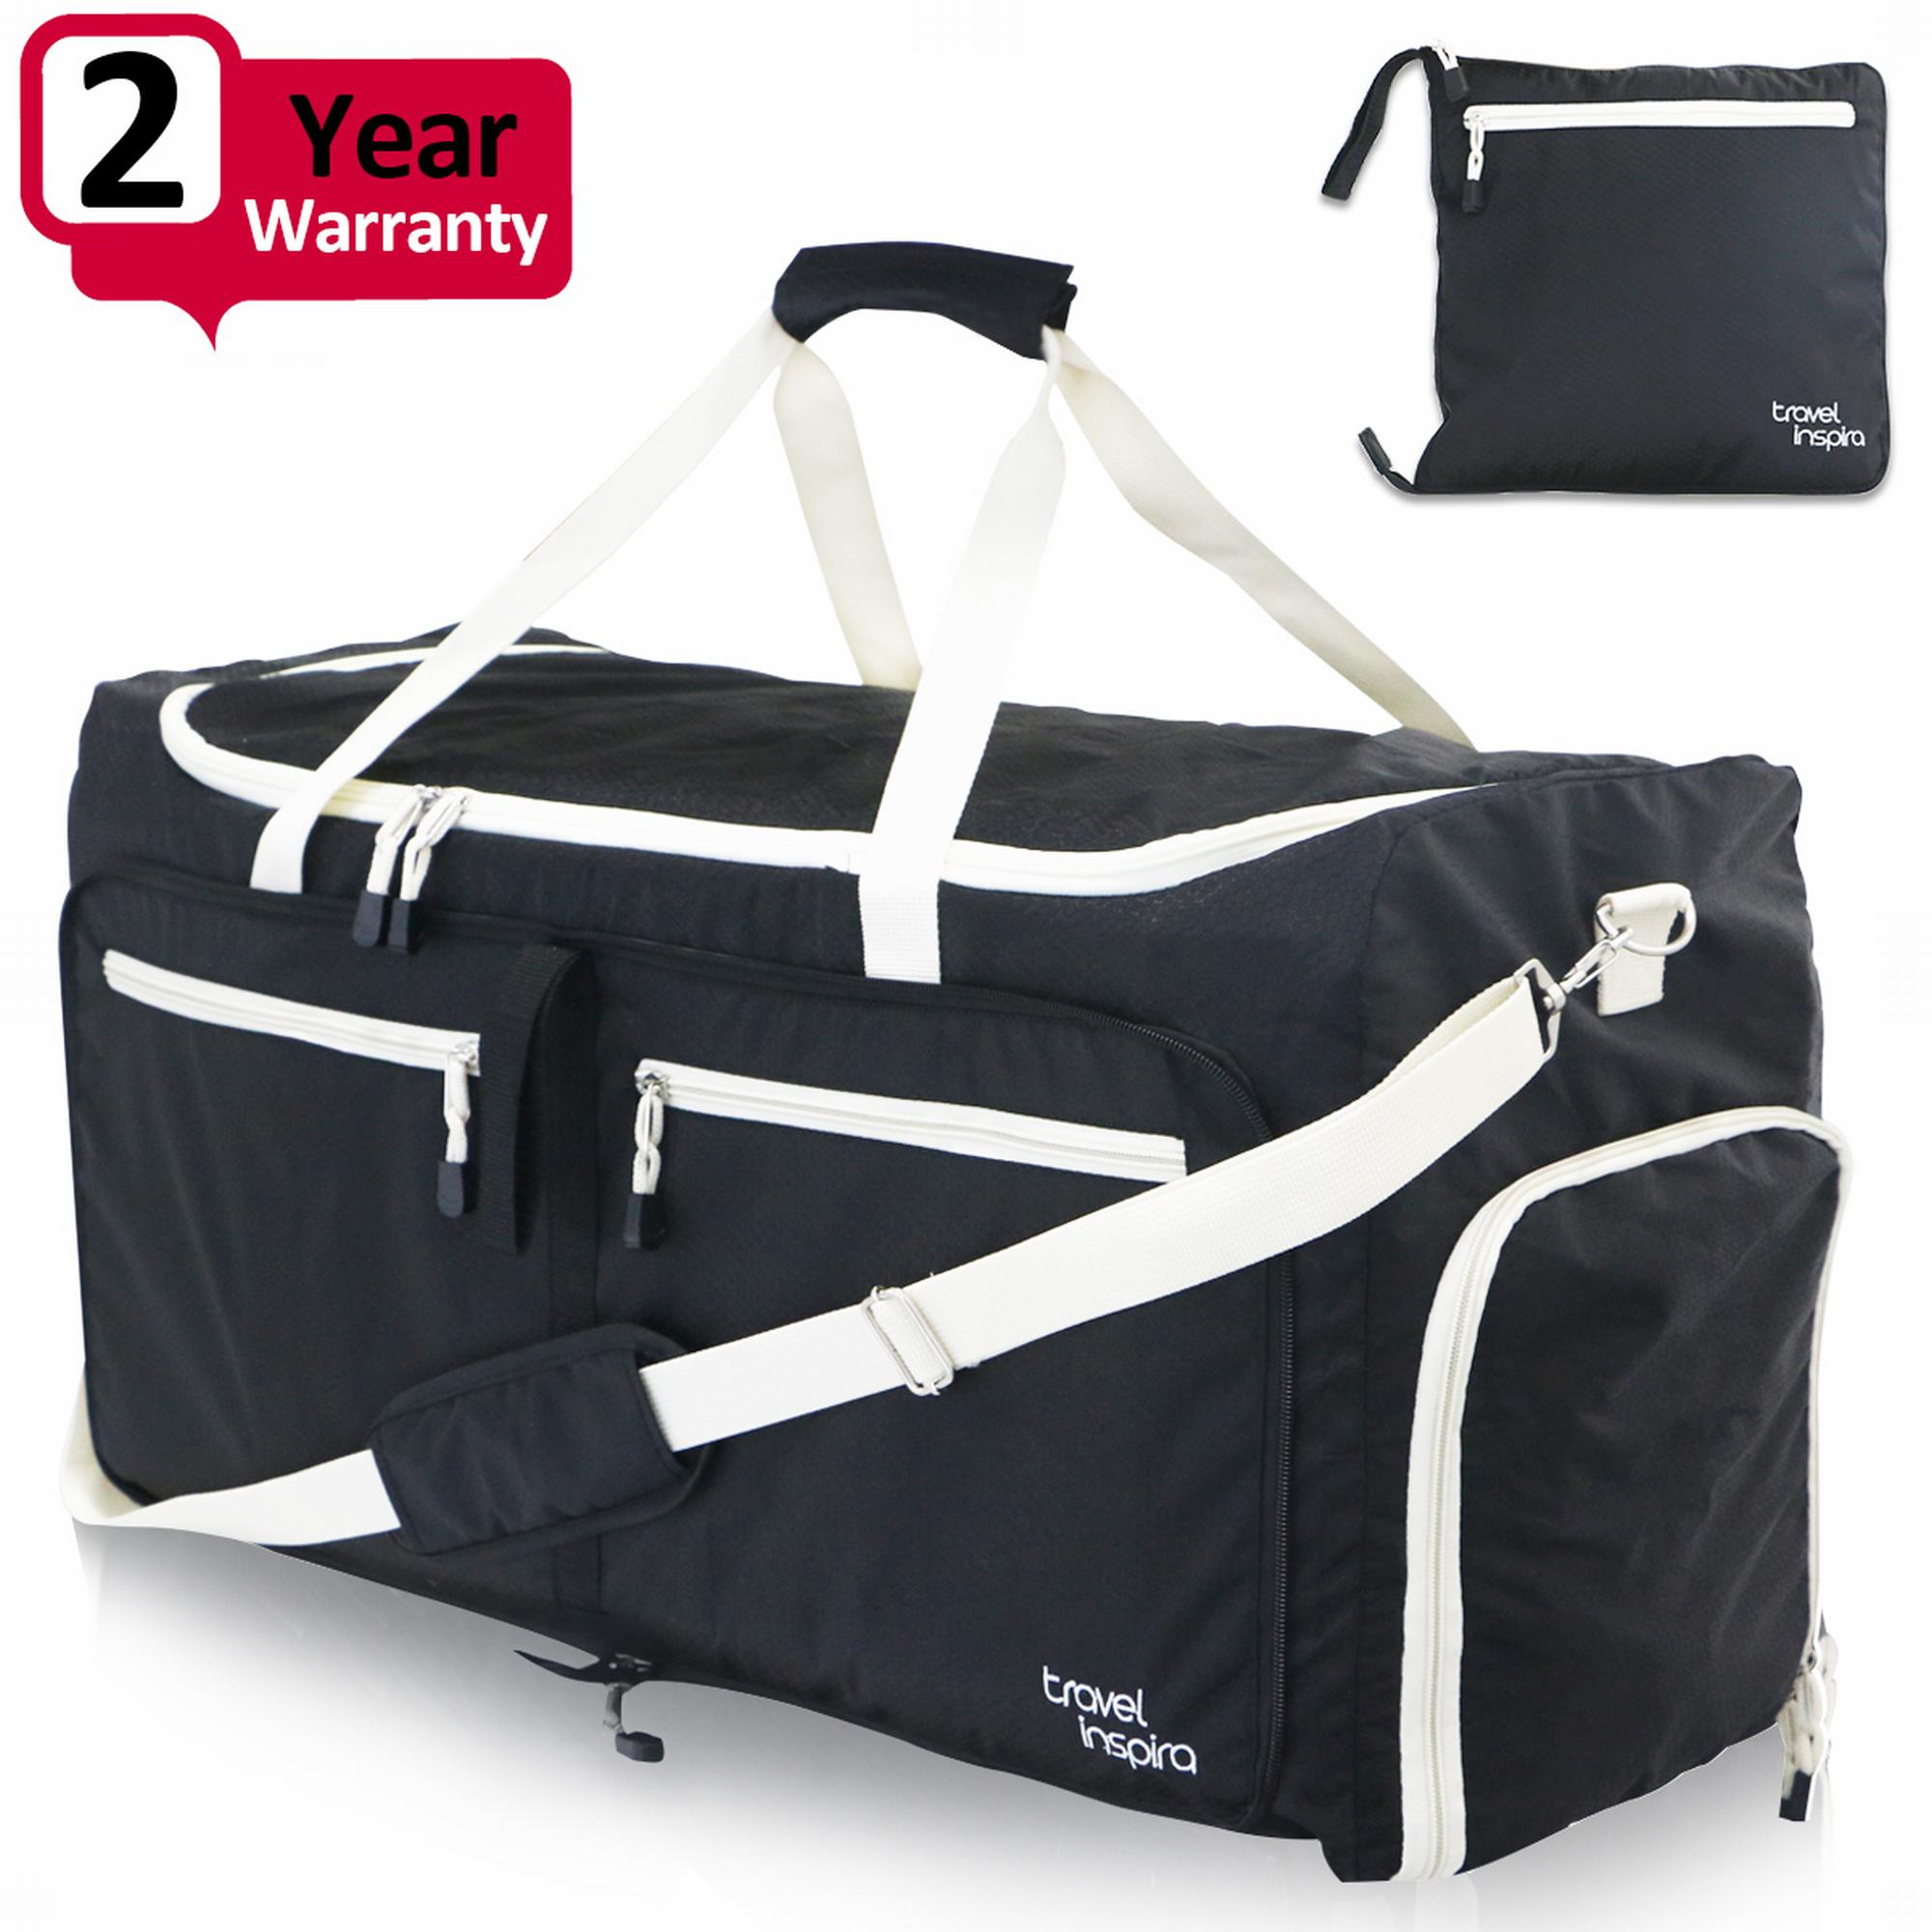 d1574e1322 Travel Inspira Large Foldable Duffel Bag XL For Packable Duffle Luggage Gym  Sports - Walmart.com